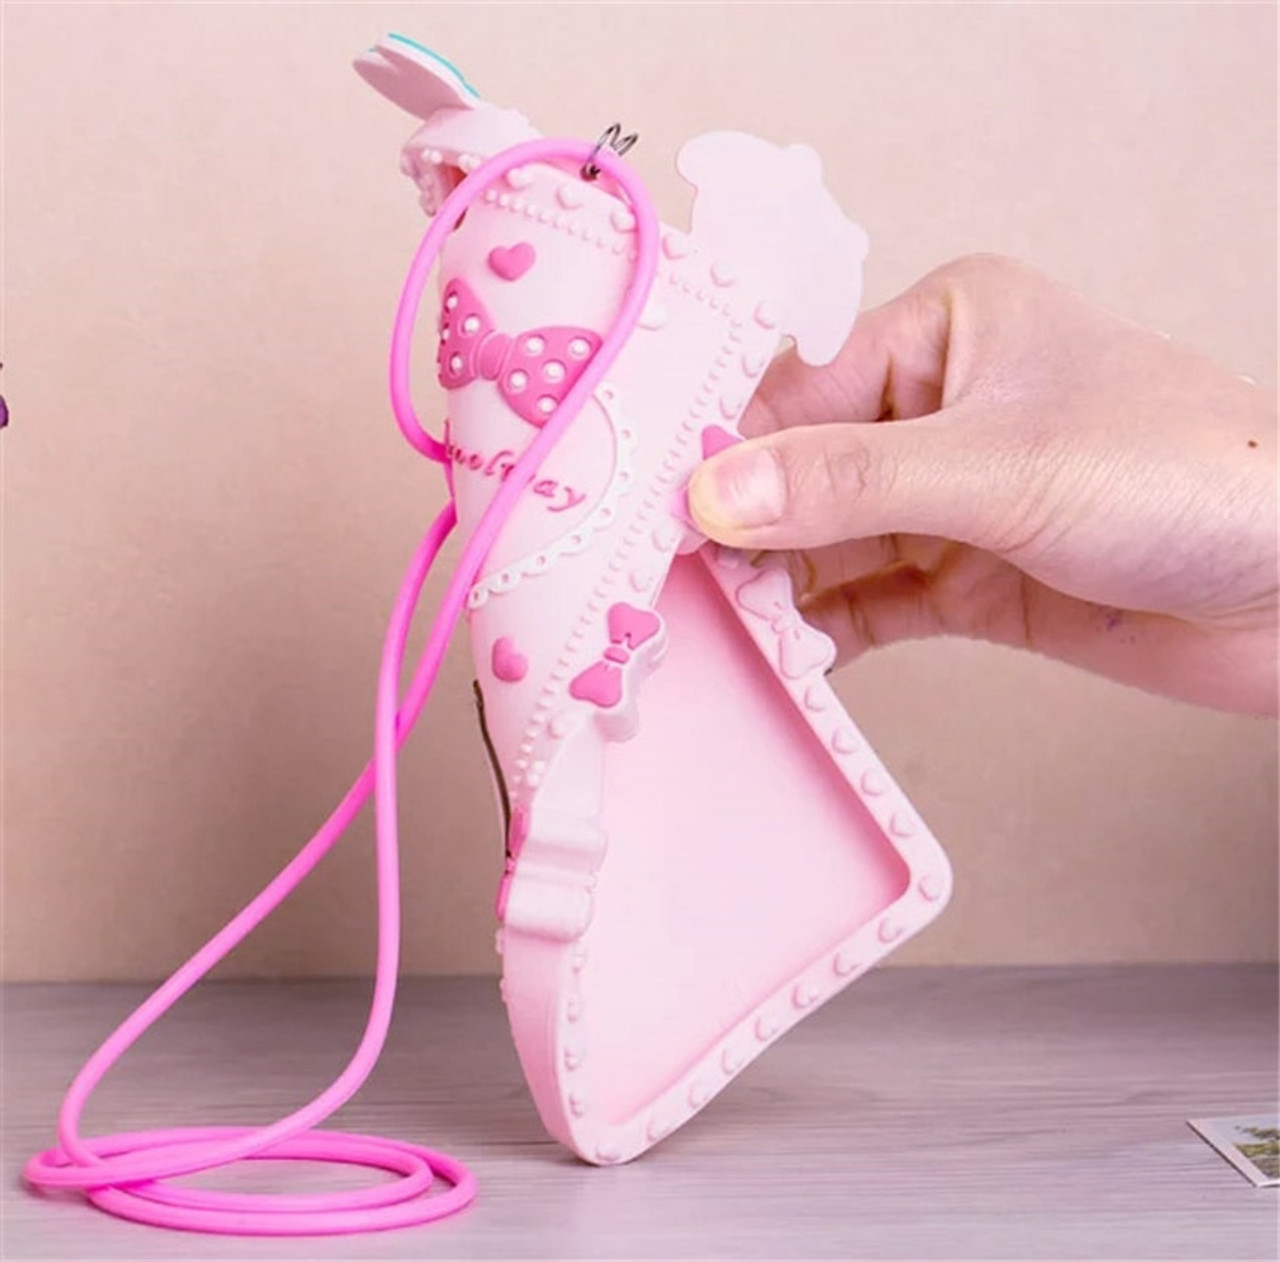 c8a4fd056 ... Lovely 3D Cartoon Hello kitty My Melody Bow Pink Capa Soft Silicone  Phone Case For iPhone ...